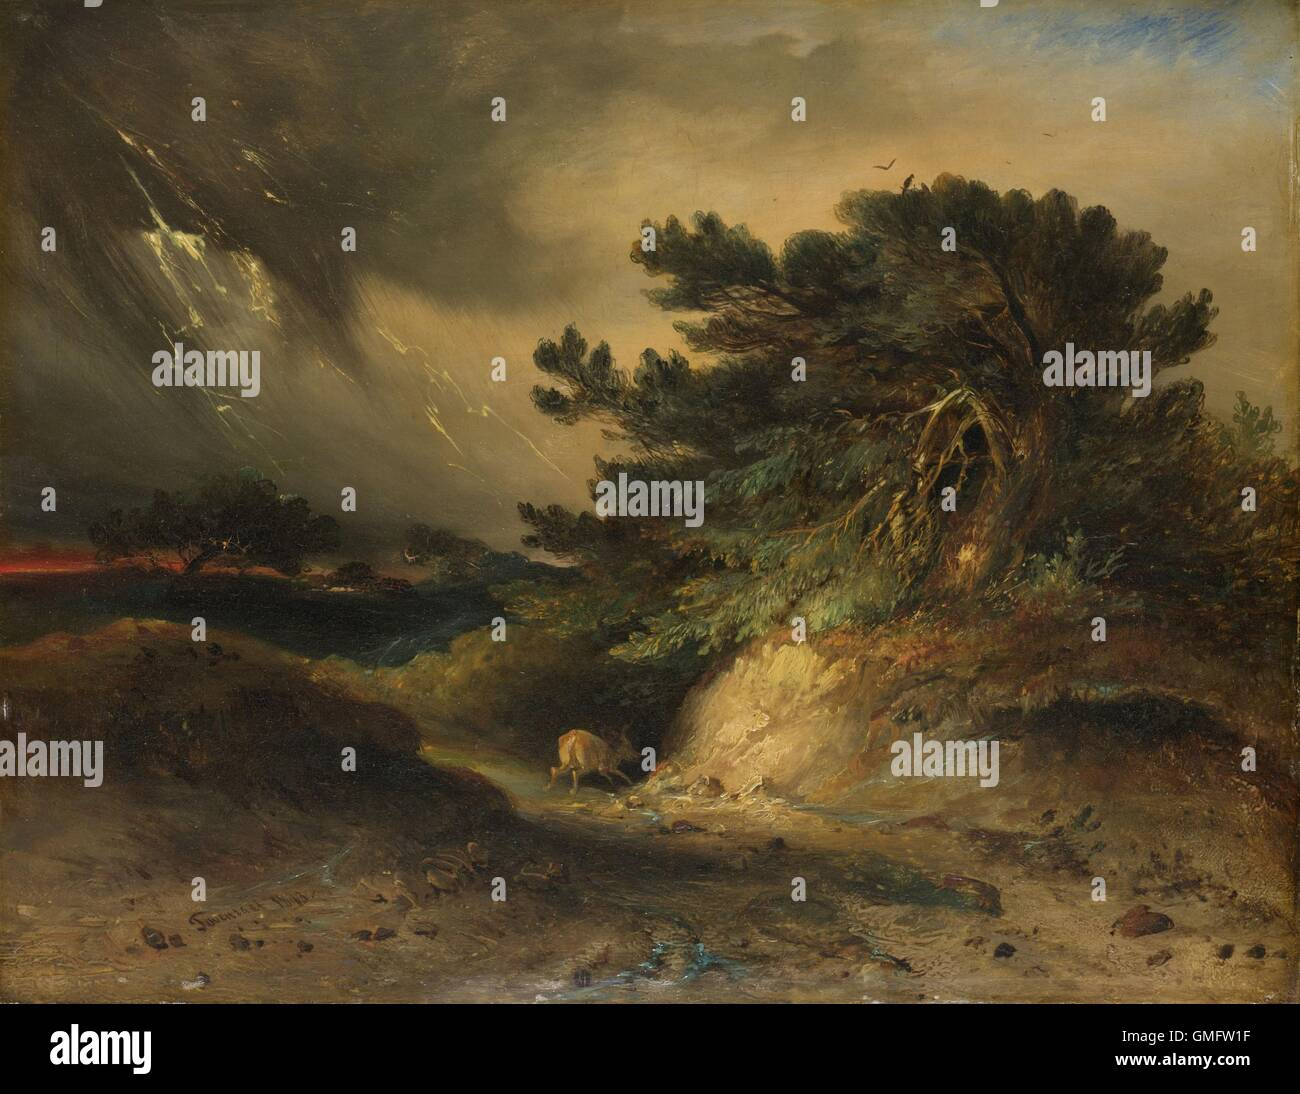 The Thunderstorm, by Johannes Tavenraat, 1843, Dutch painting, oil on panel. Dramatic storm scene incorporating Stock Photo